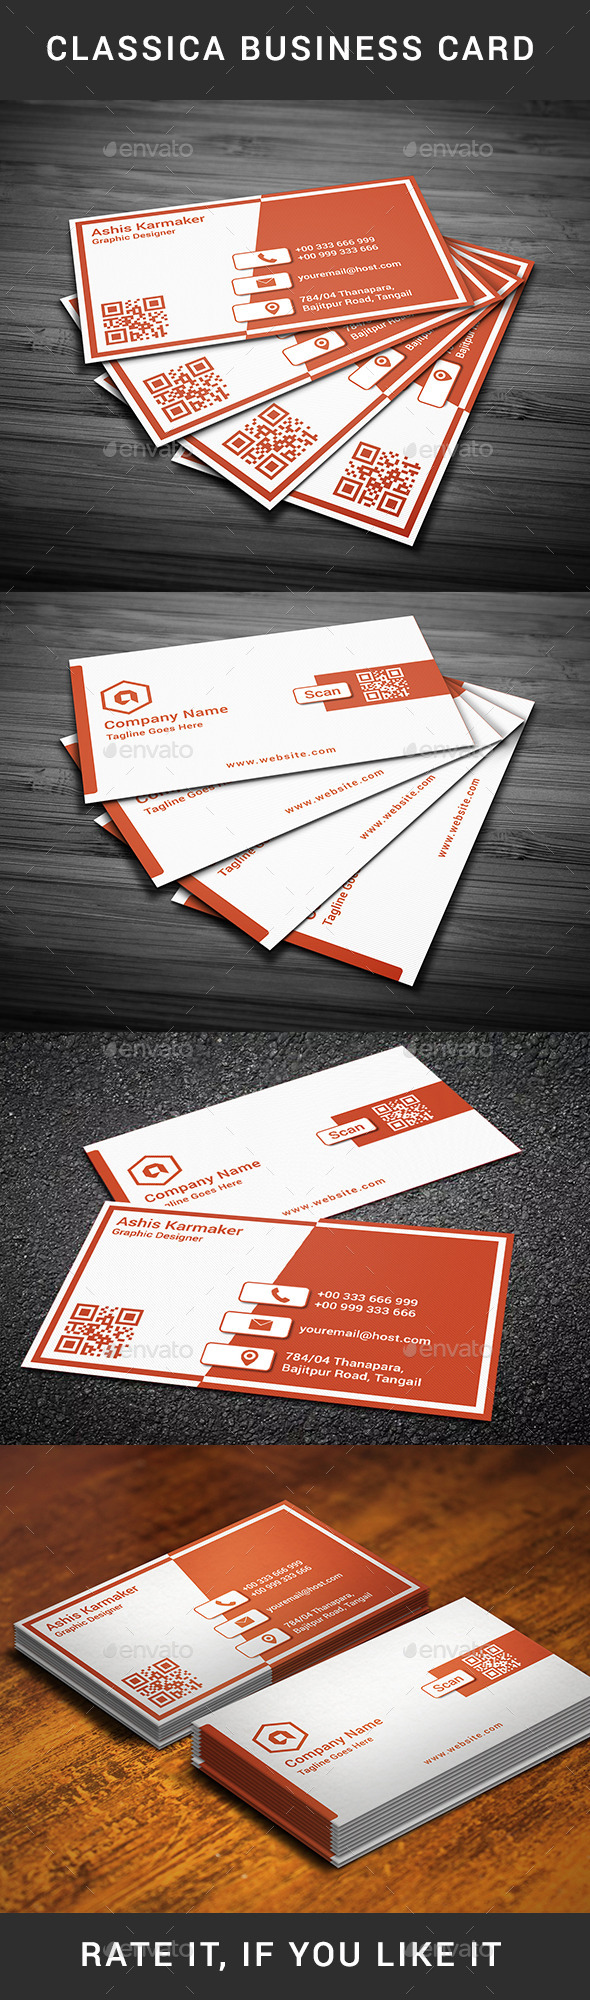 GraphicRiver Classica Business Card 10958162